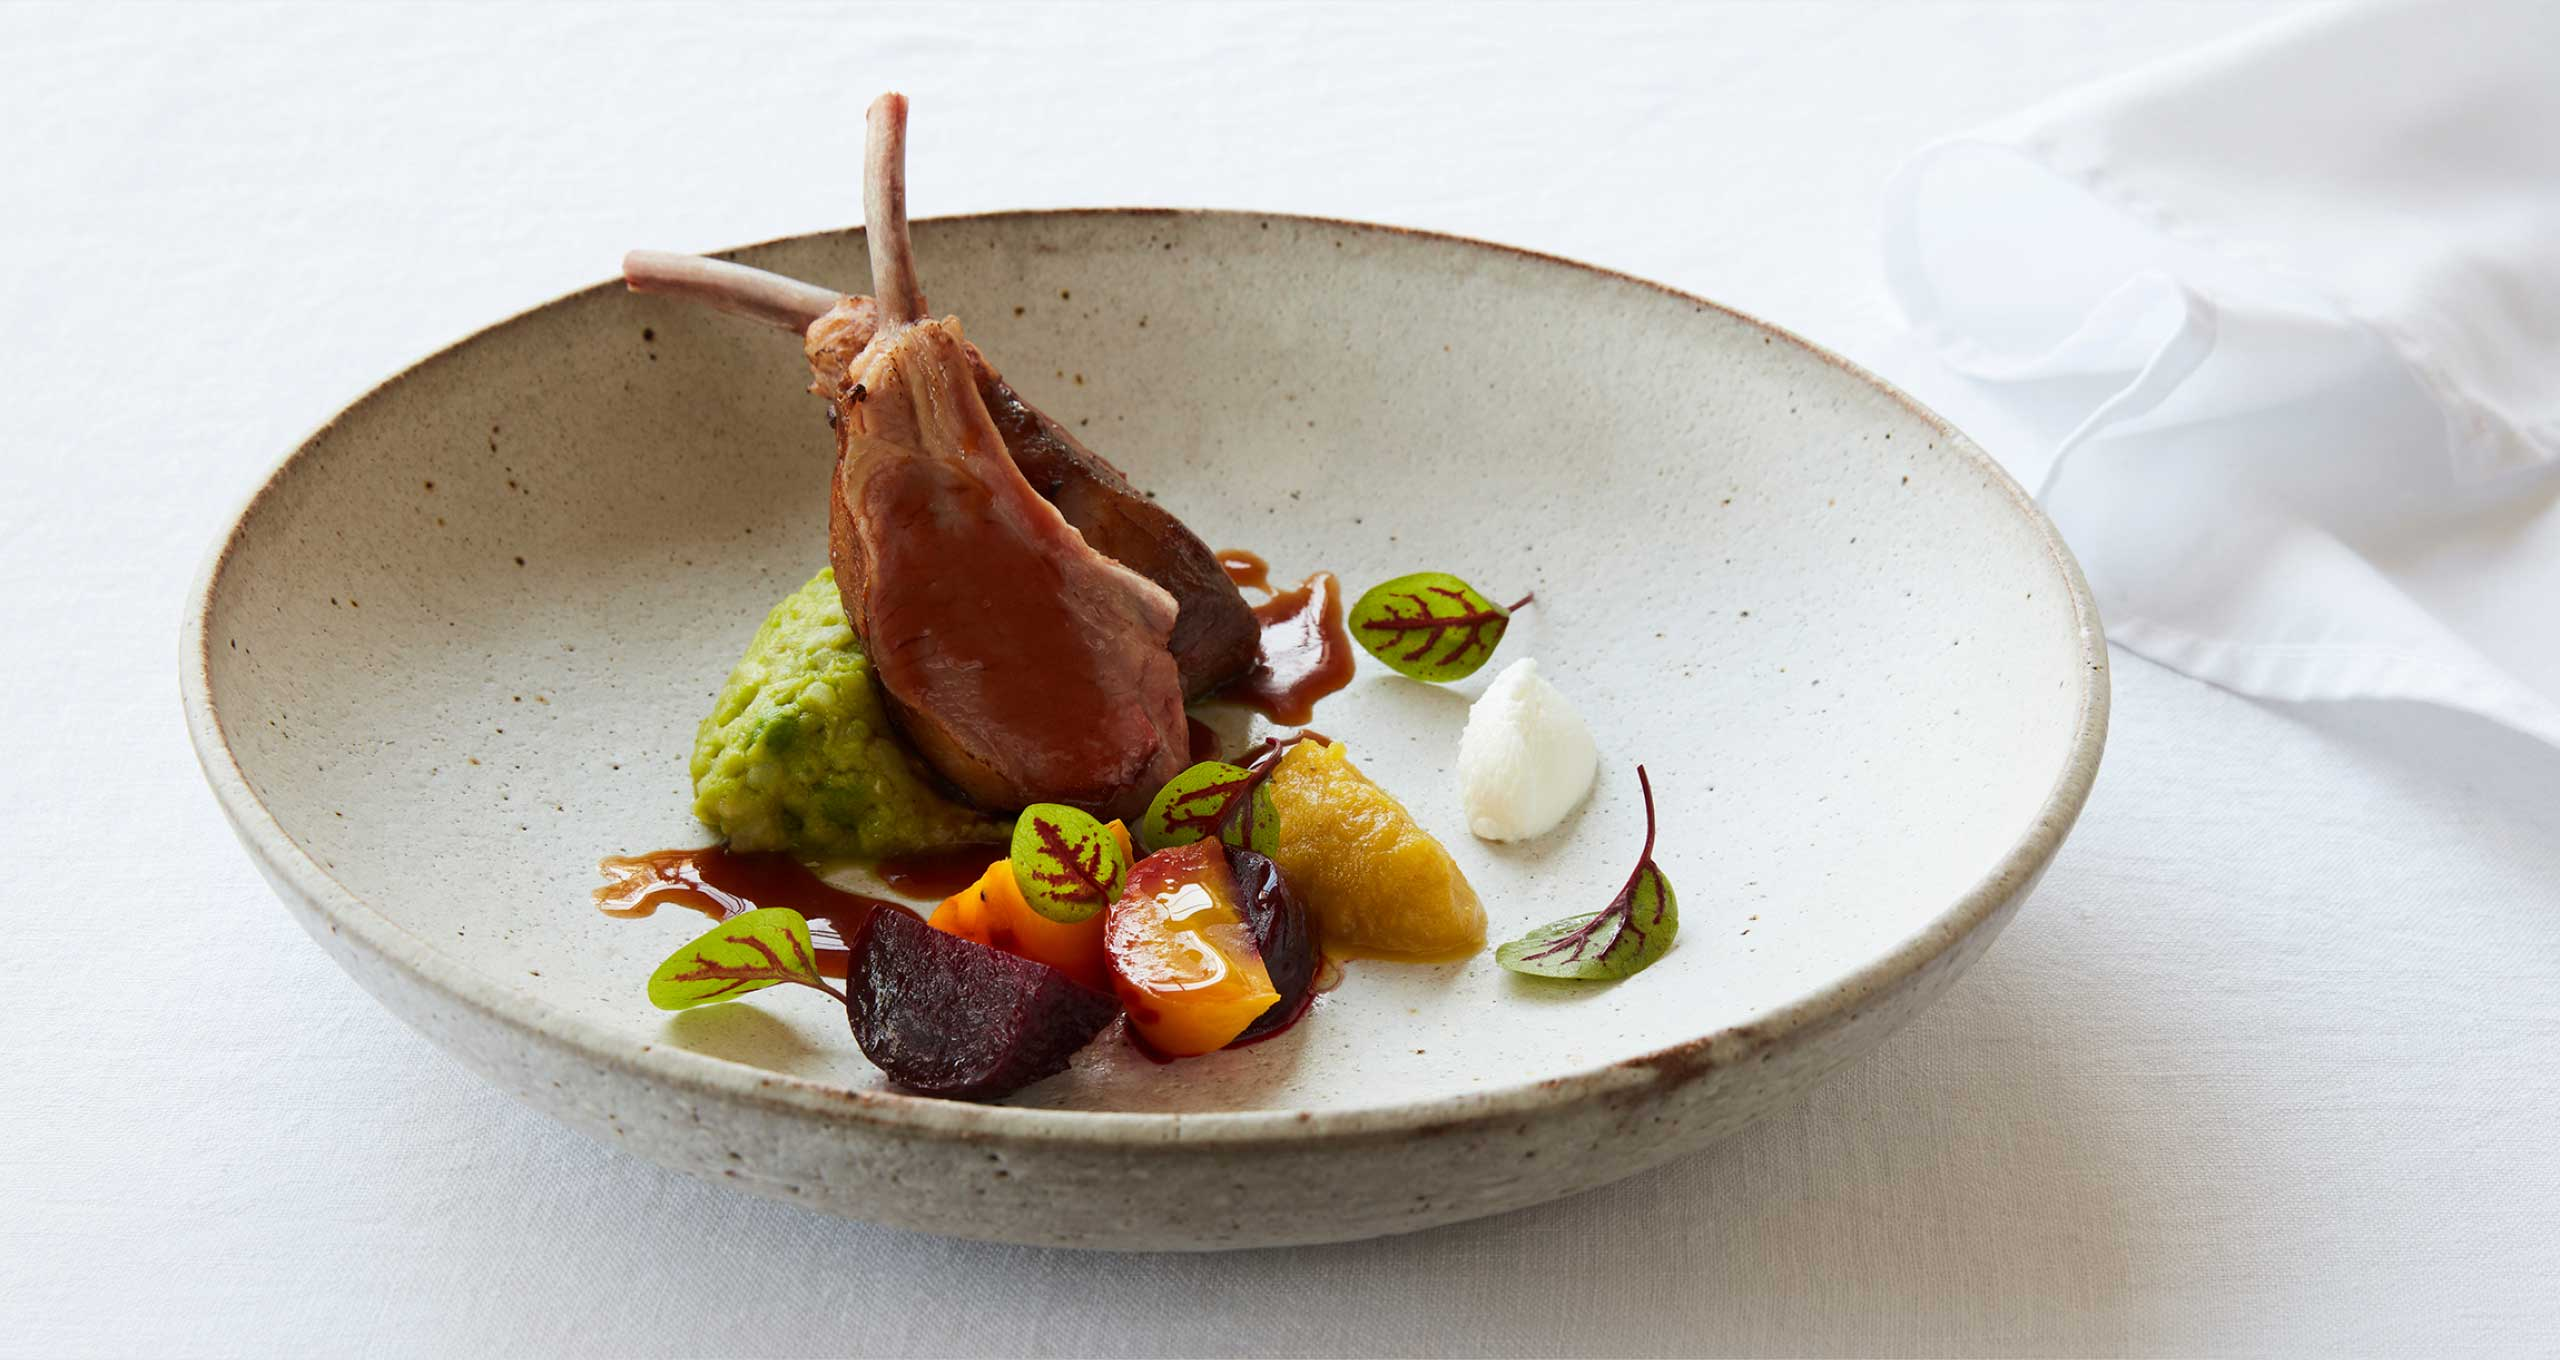 Lamb and Vegetables prepared as part of our Corporate Menu